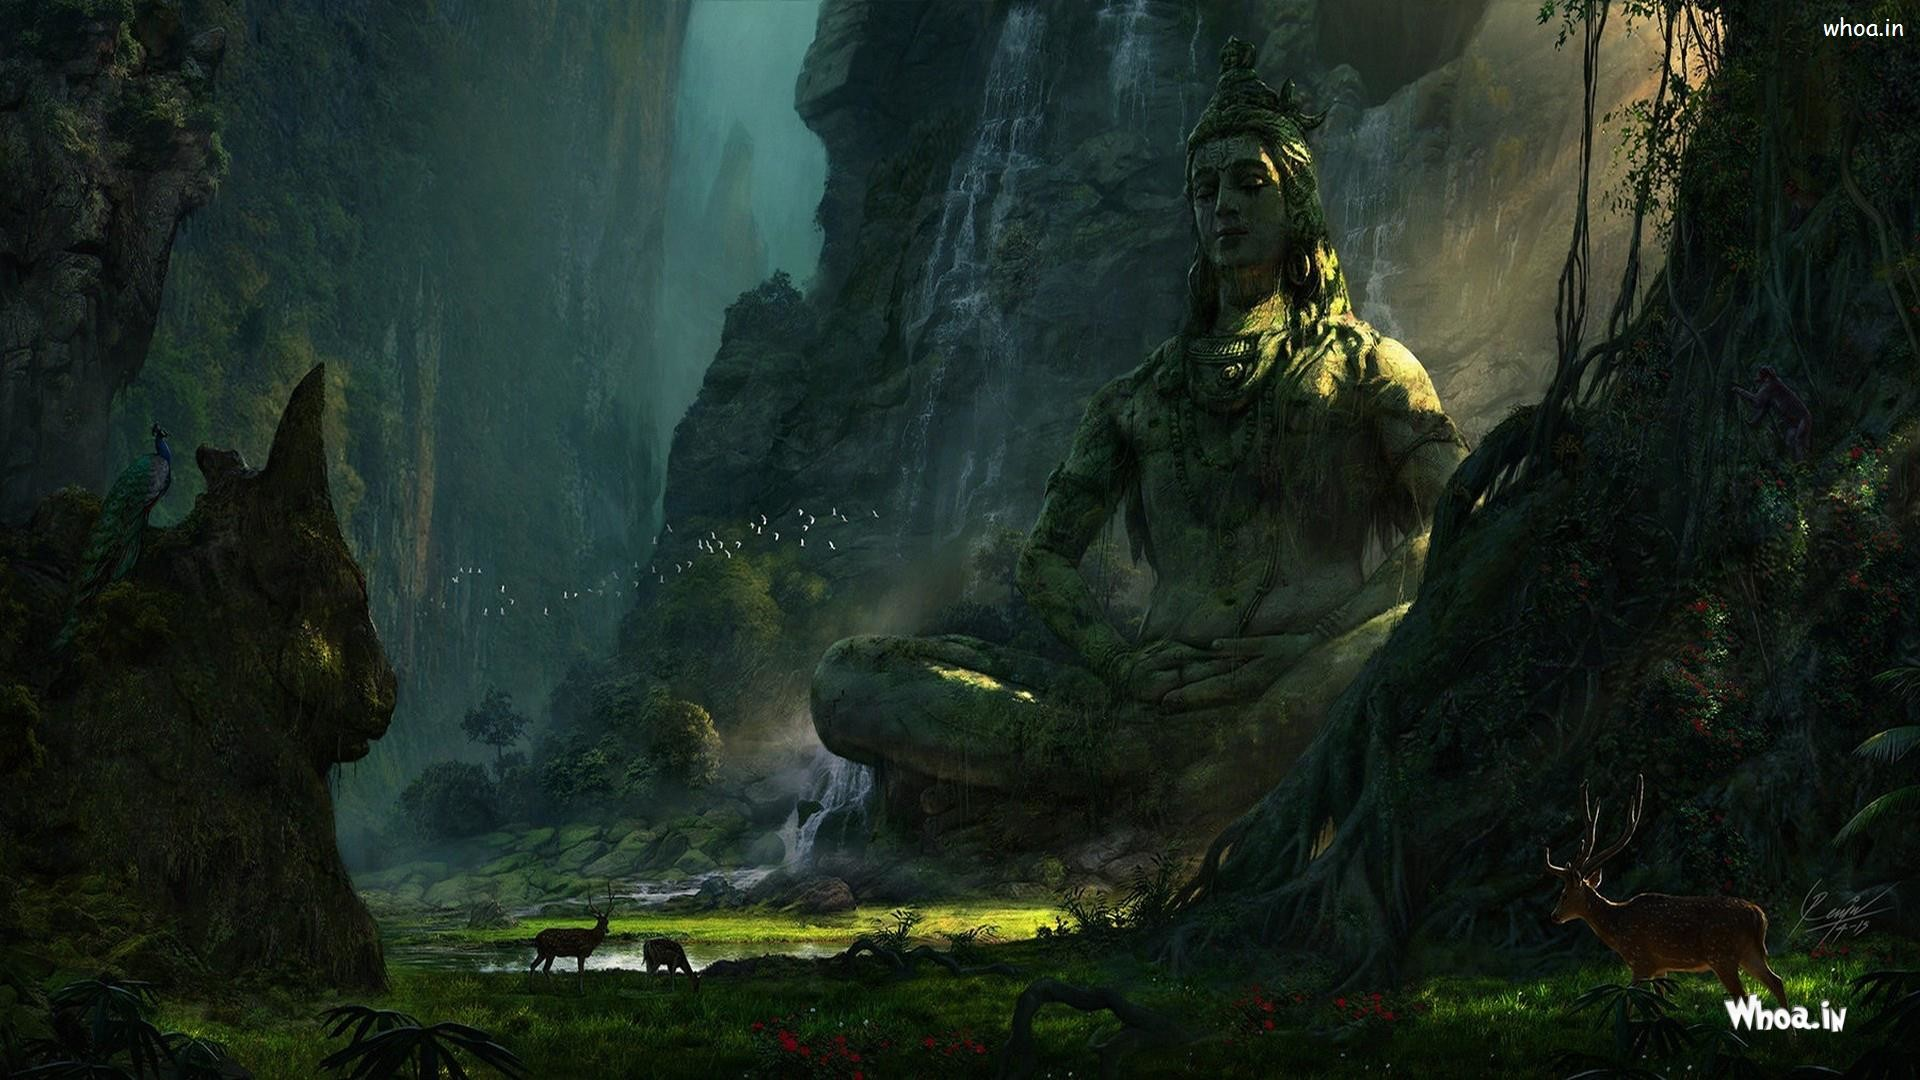 lord shiva wallpapers 53 pictures lord shiva wallpapers 53 pictures